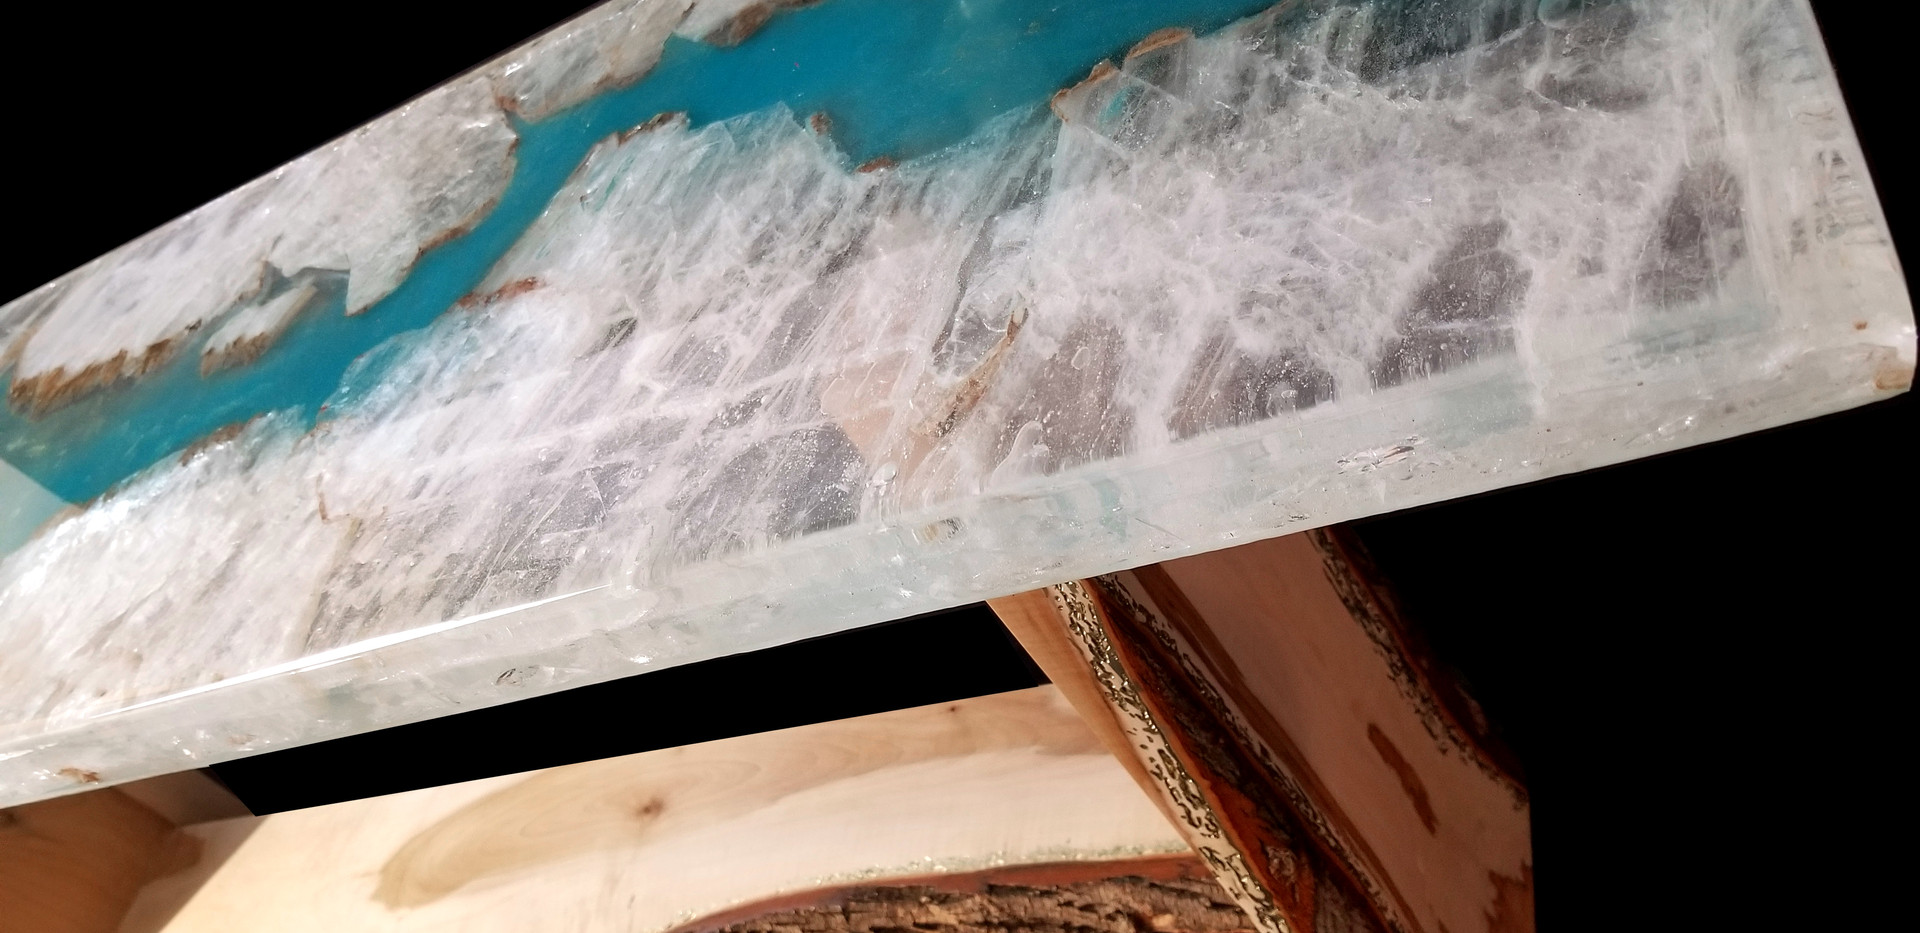 Hand chosen selenite slab for tabletop from Jalisco Mexico